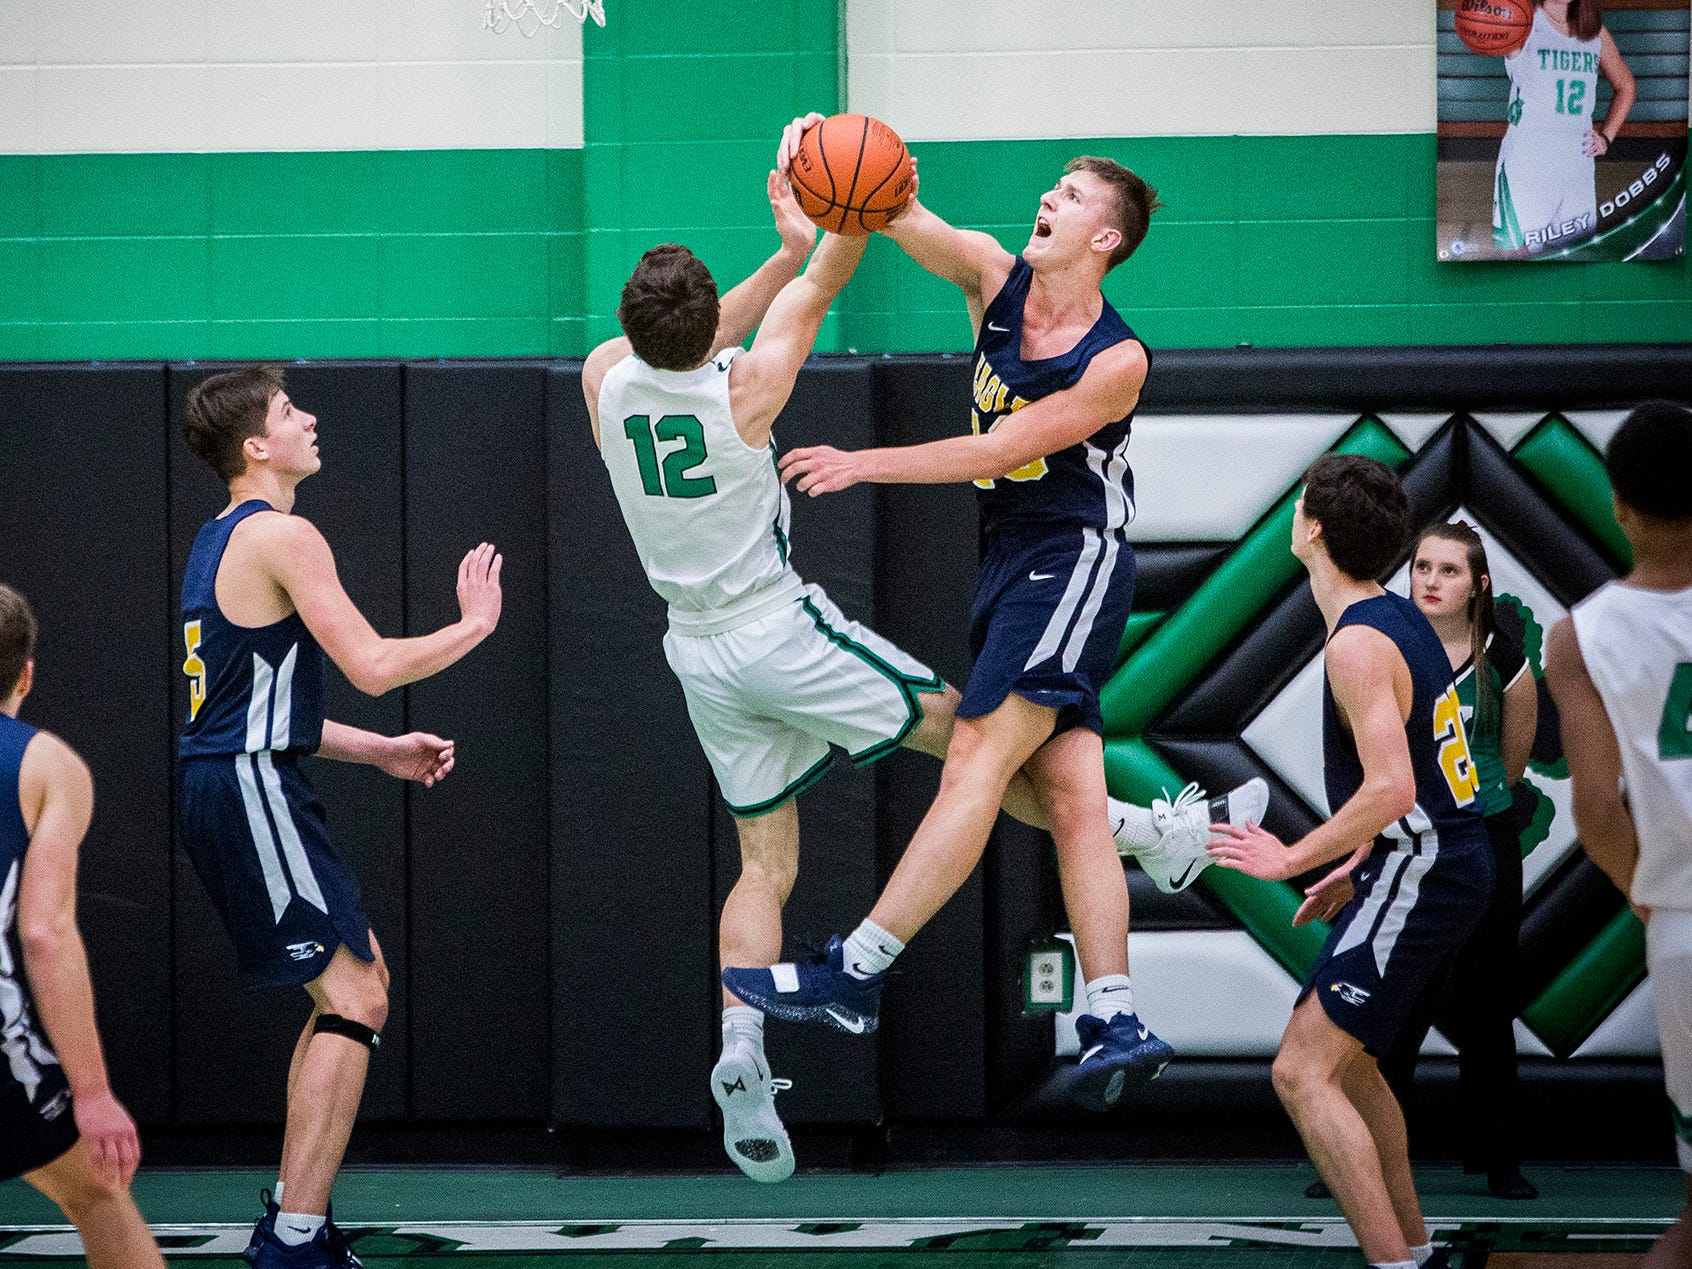 Delta's Tyler Wilburn denies a shot from Yorktown during their game at Yorktown High School Saturday, Dec. 7, 2018.